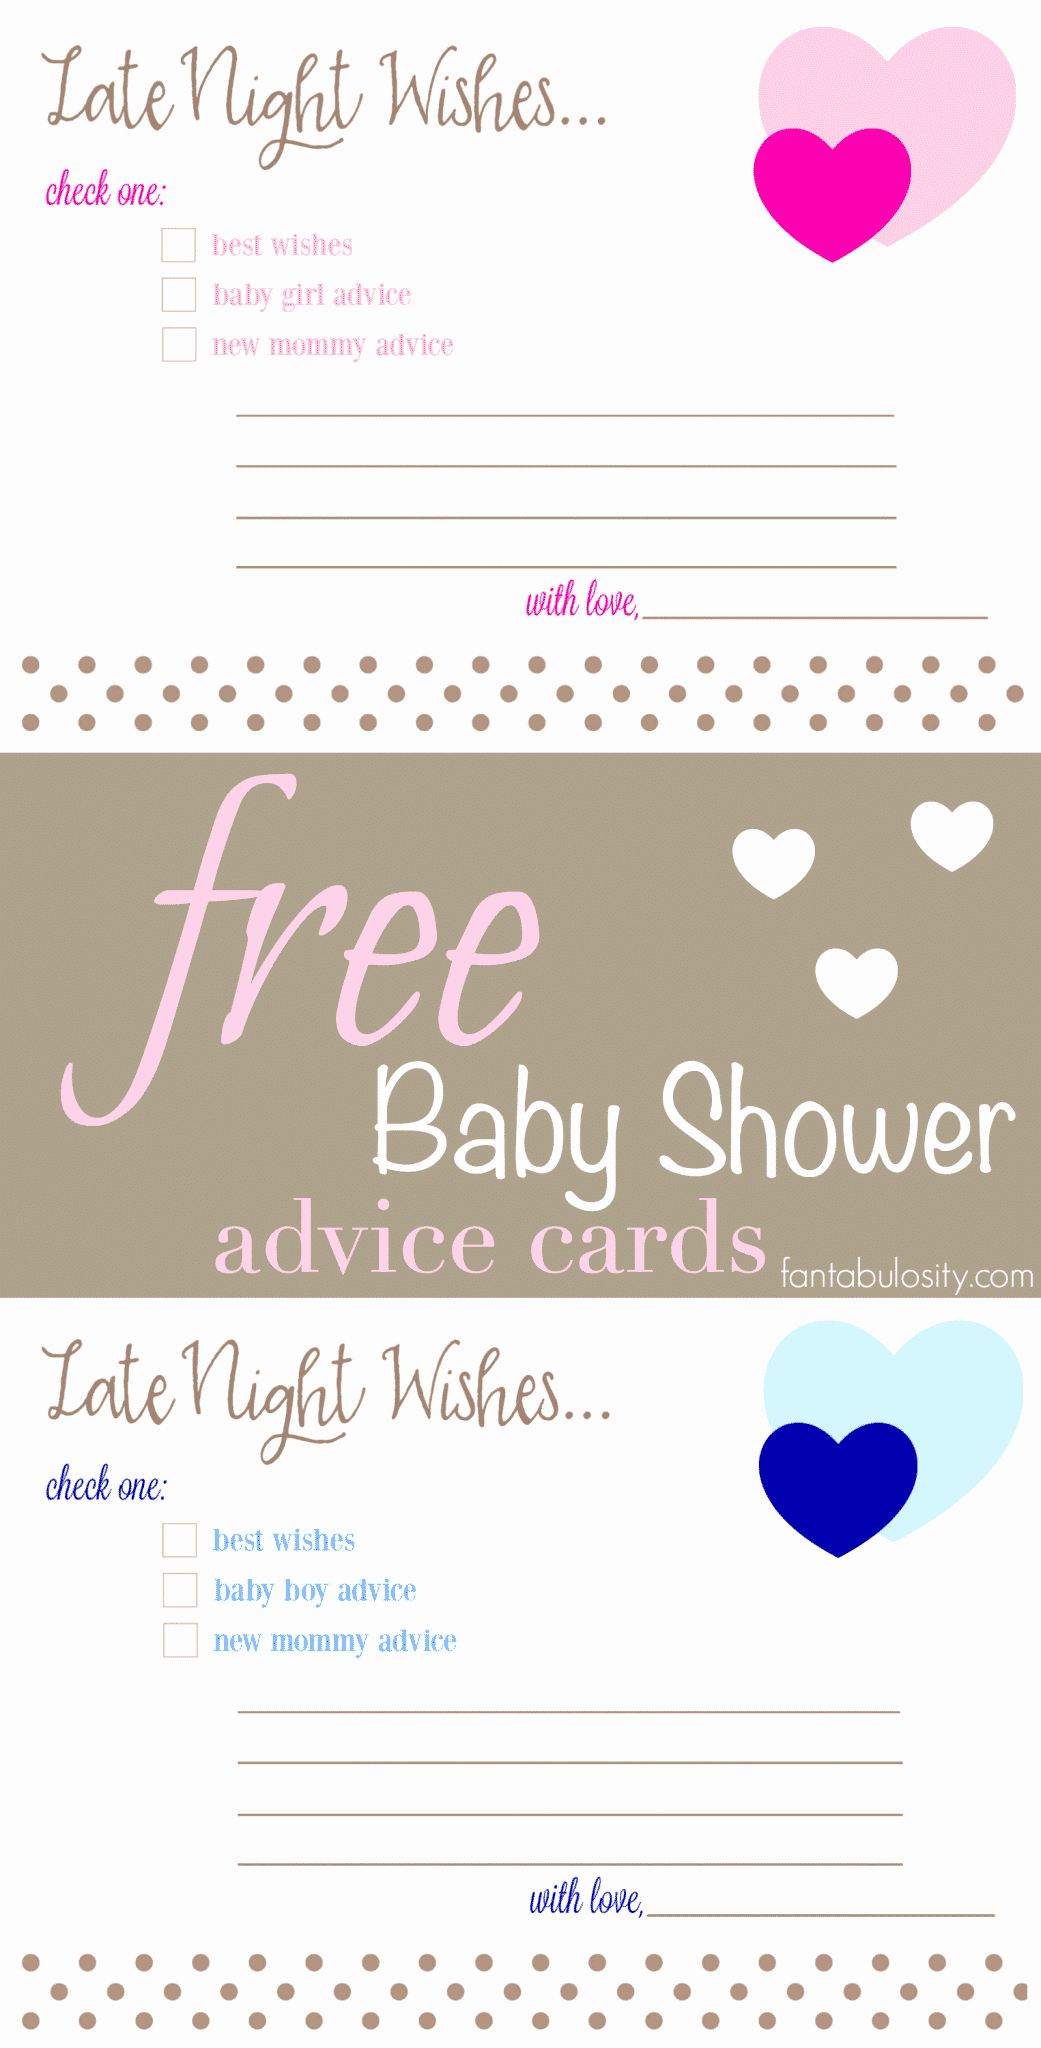 Baby Shower Card Printable Luxury Free Printable Baby Shower Advice & Best Wishes Cards